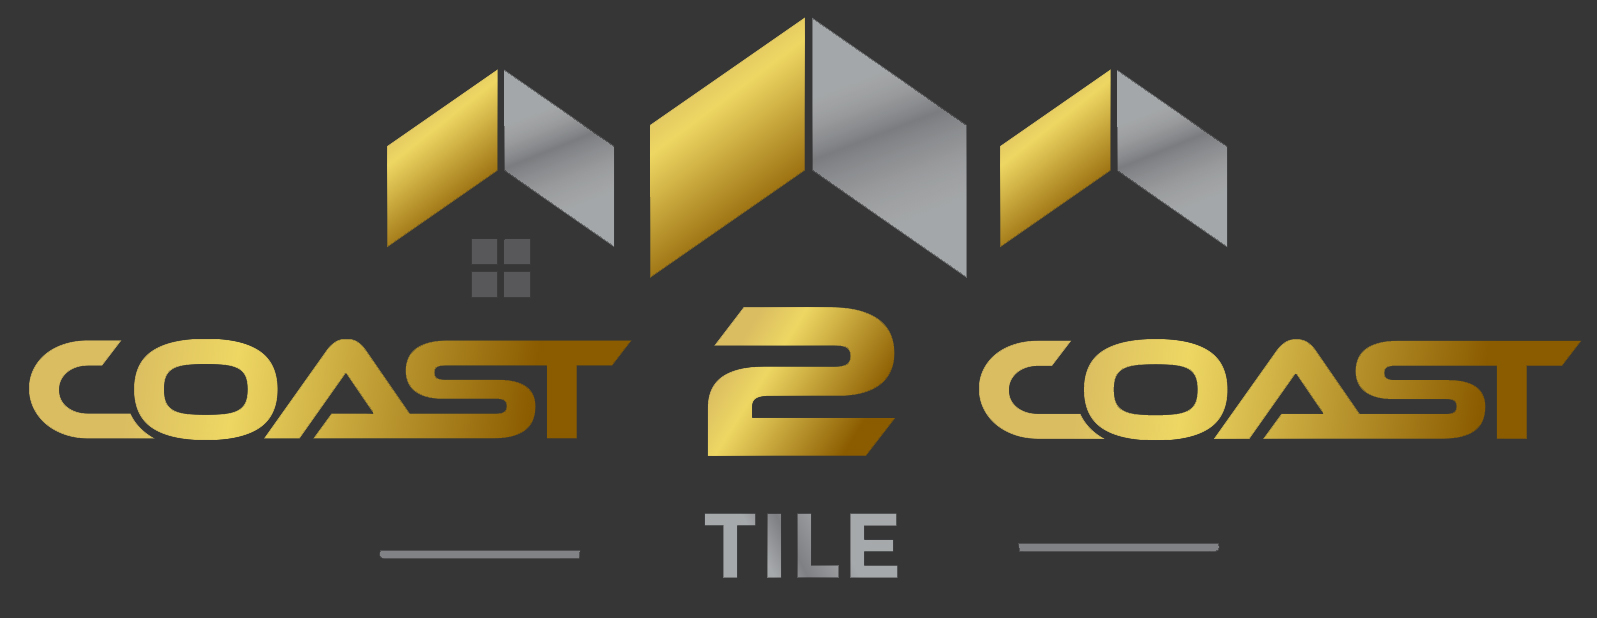 Coast 2 Coast Tile Inc